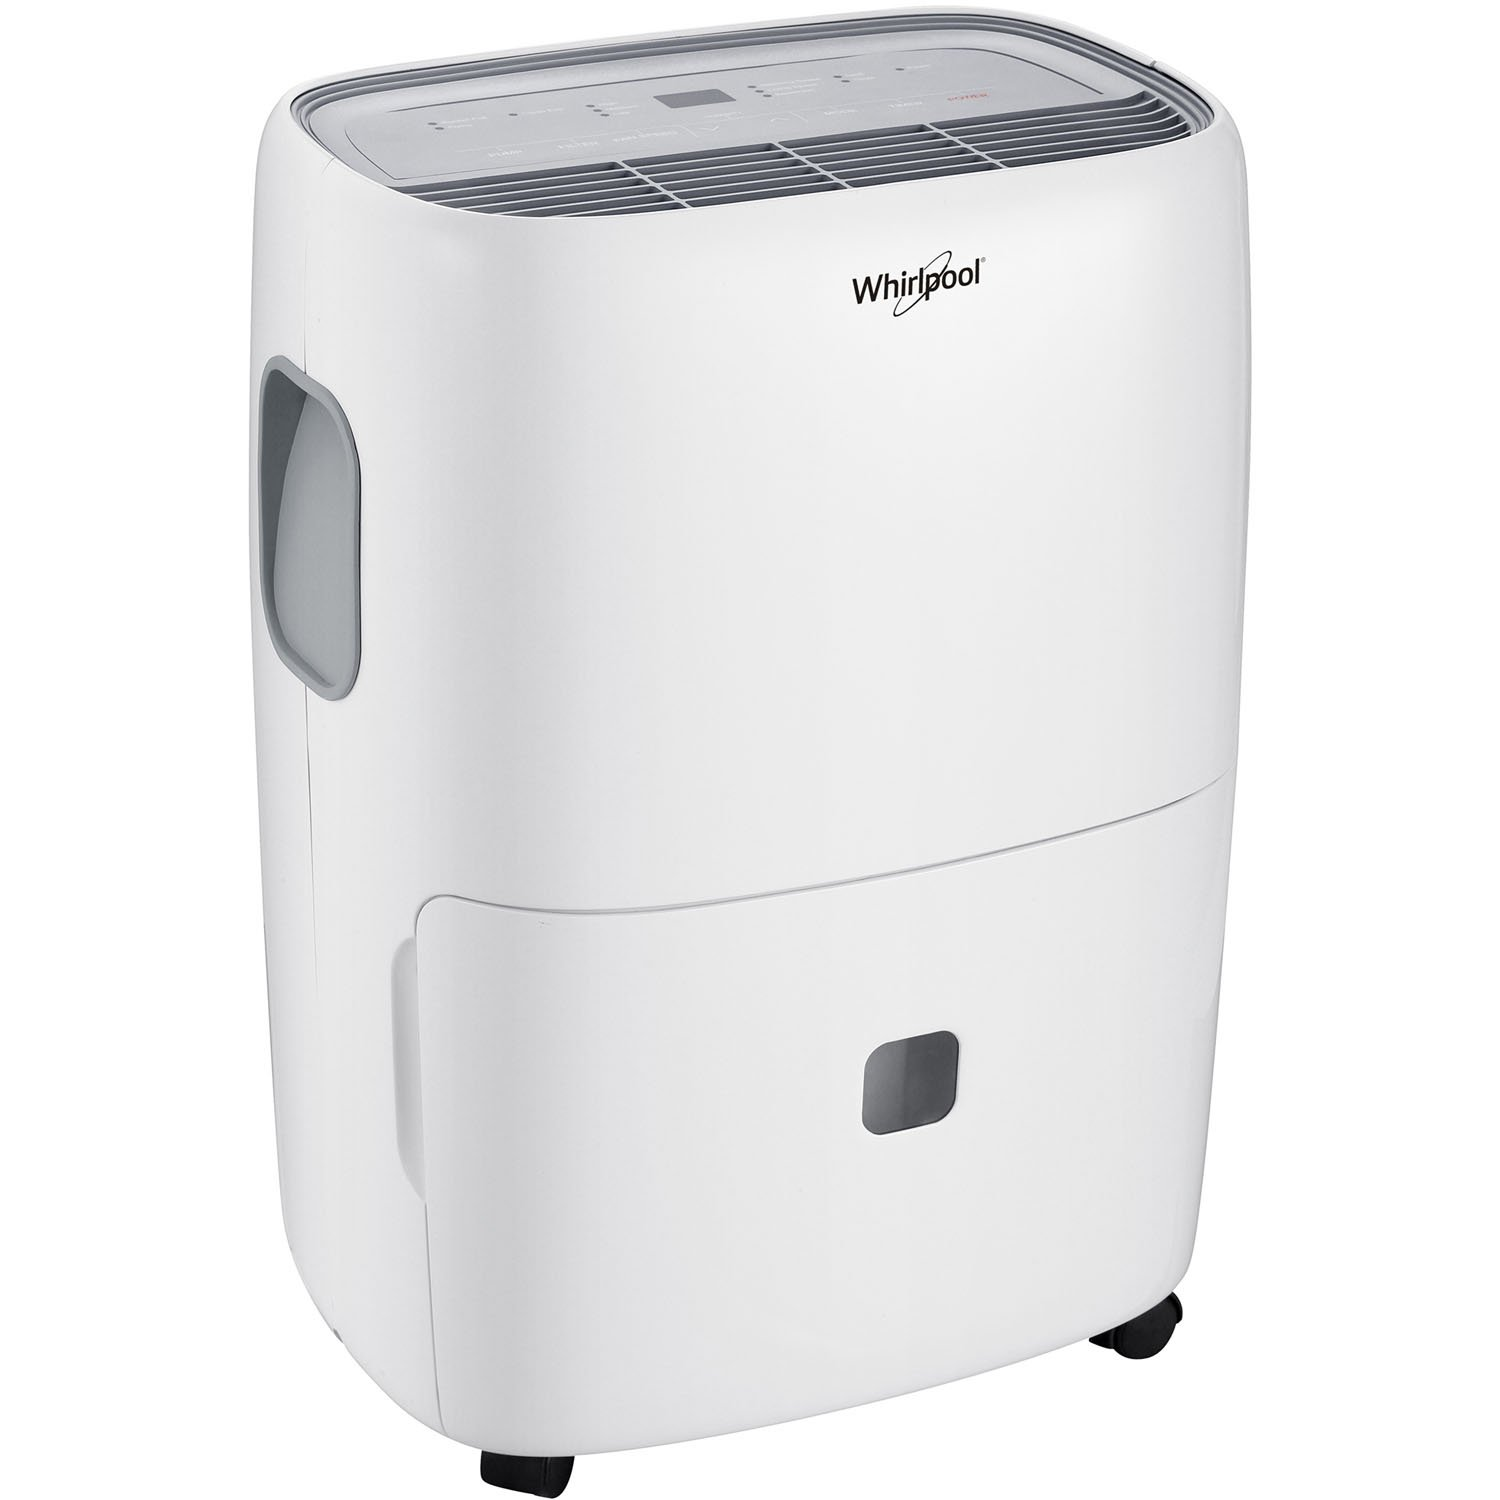 Whirlpool Energy Star 70-Pint Dehumidifier with Built-in Pump